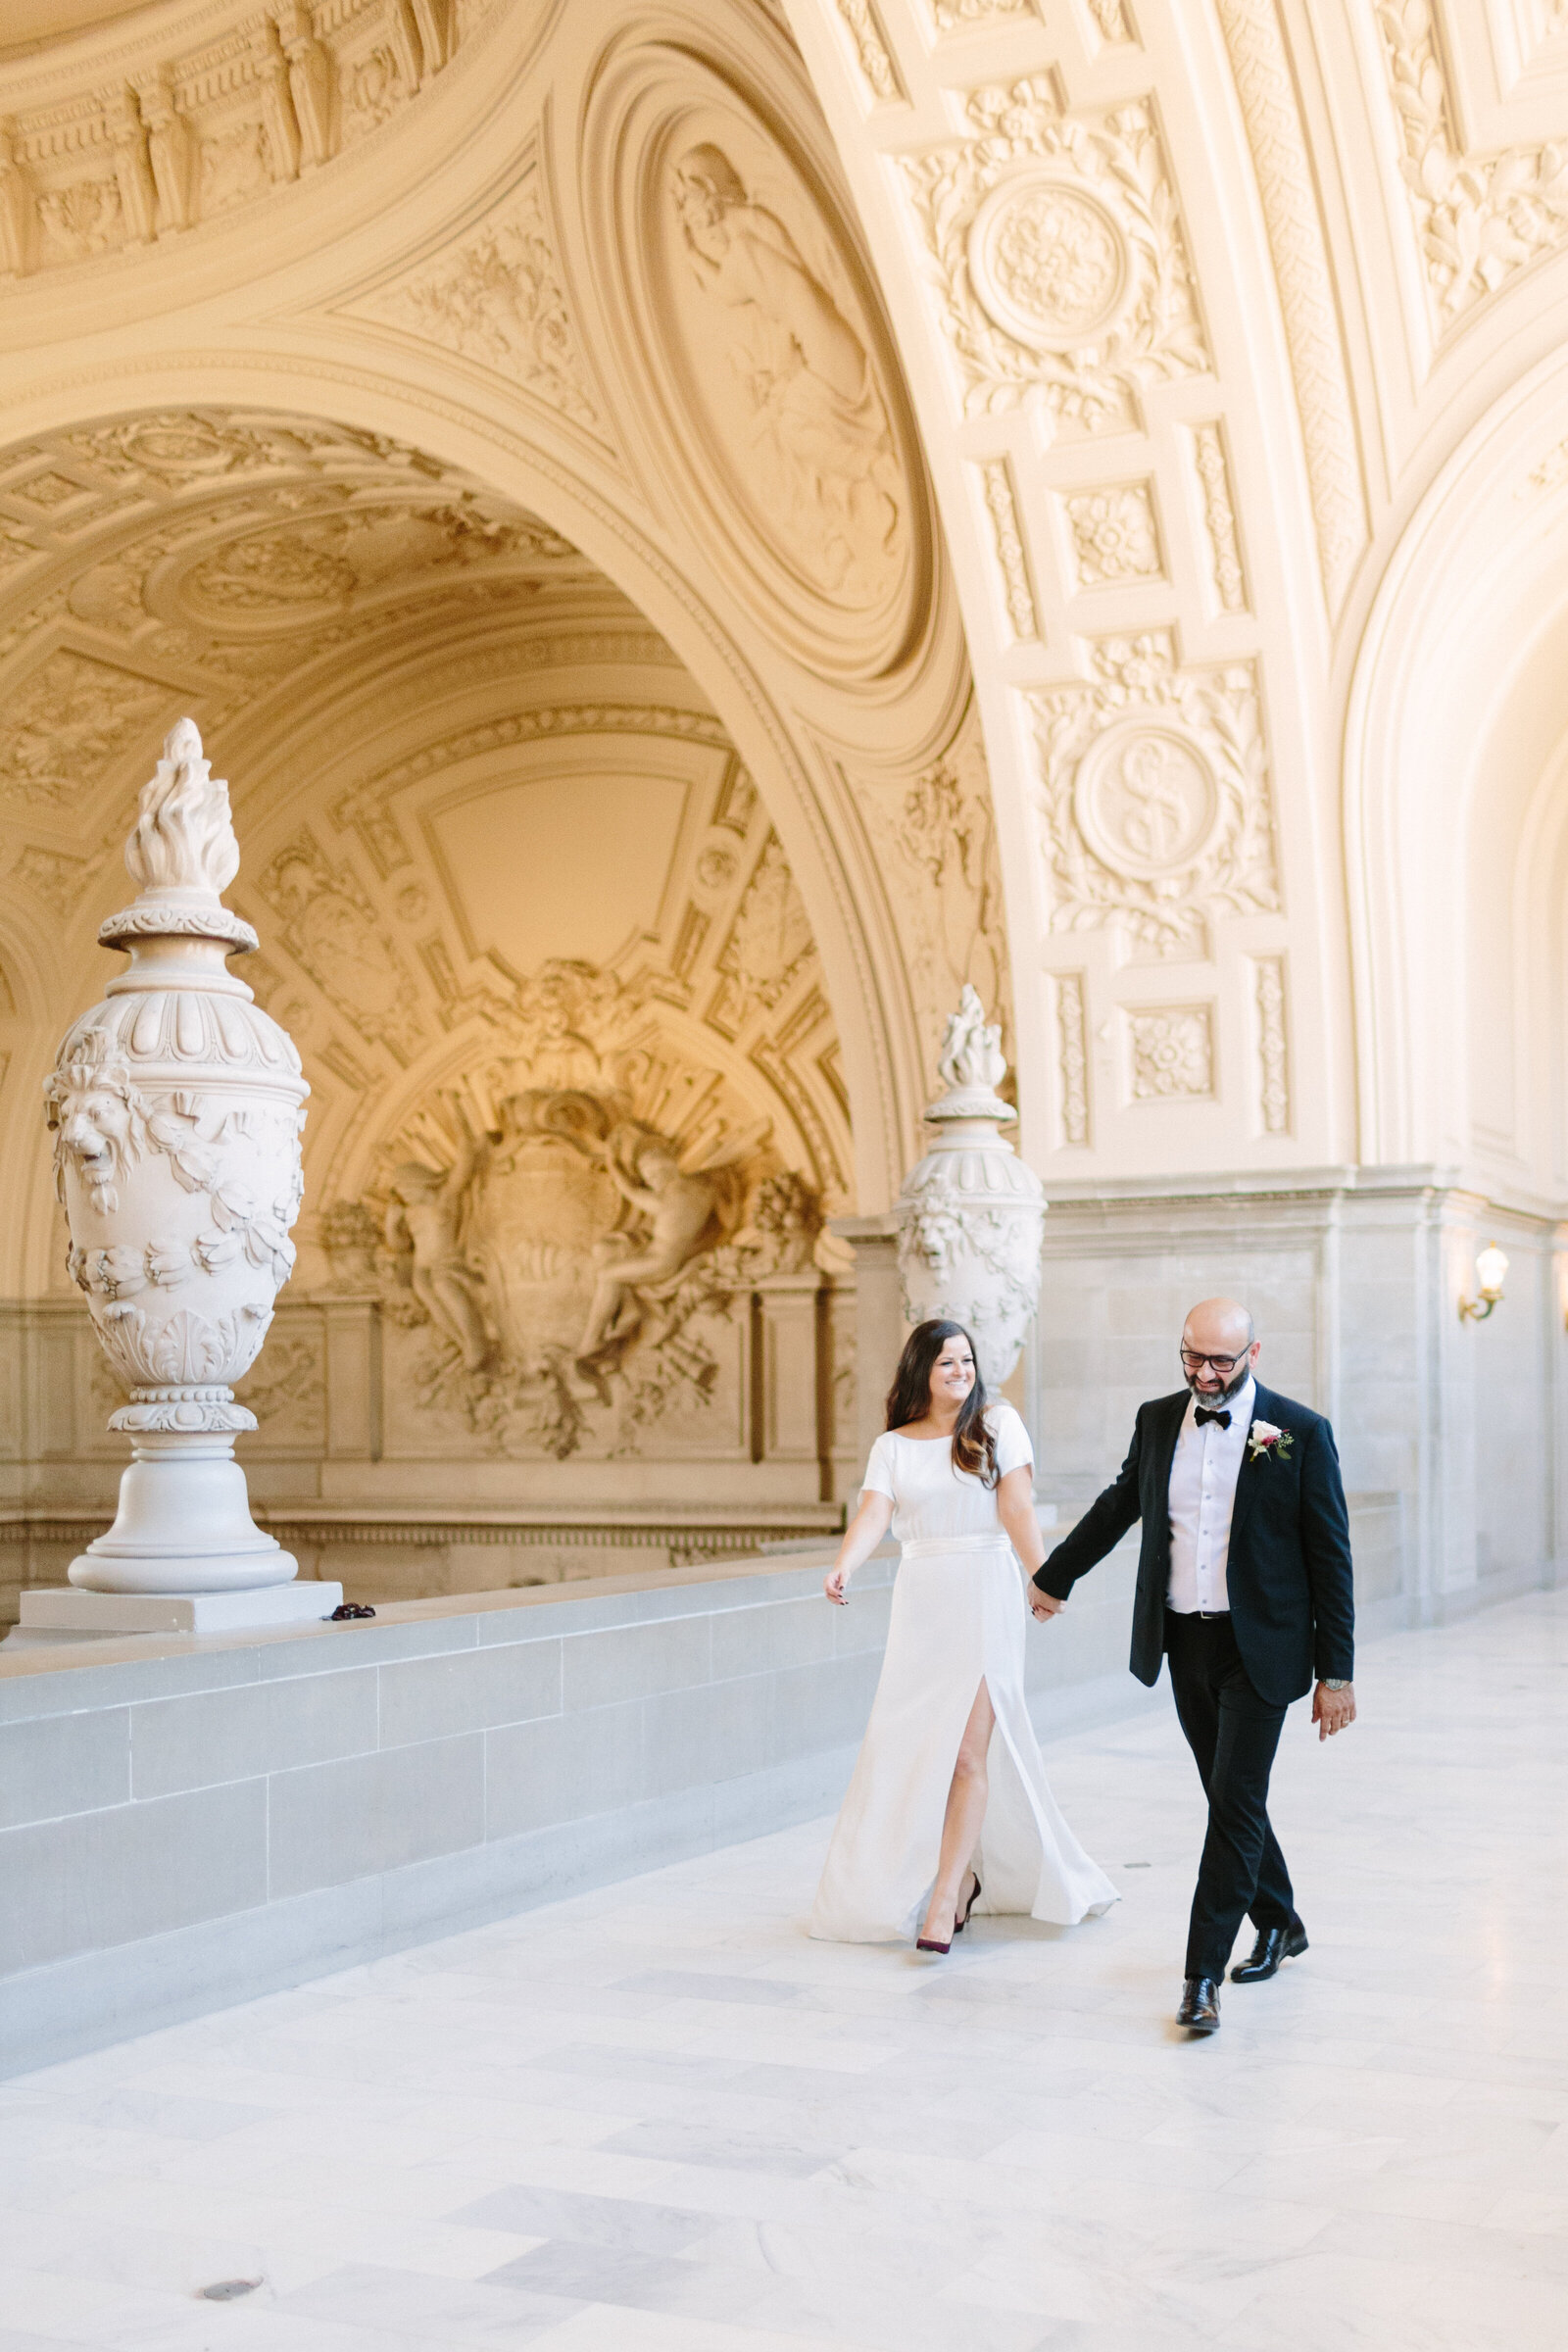 larissa-cleveland-elope-eleopement-intimate-wedding-photographer-san-francisco-napa-carmel-113